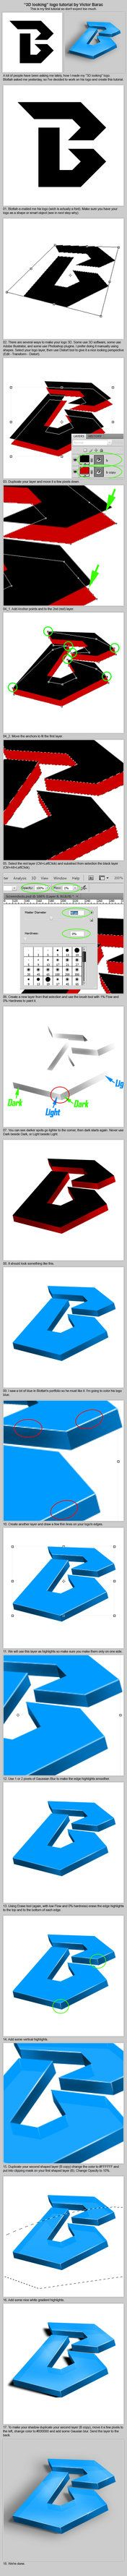 3D logo tutorial by victorbarac